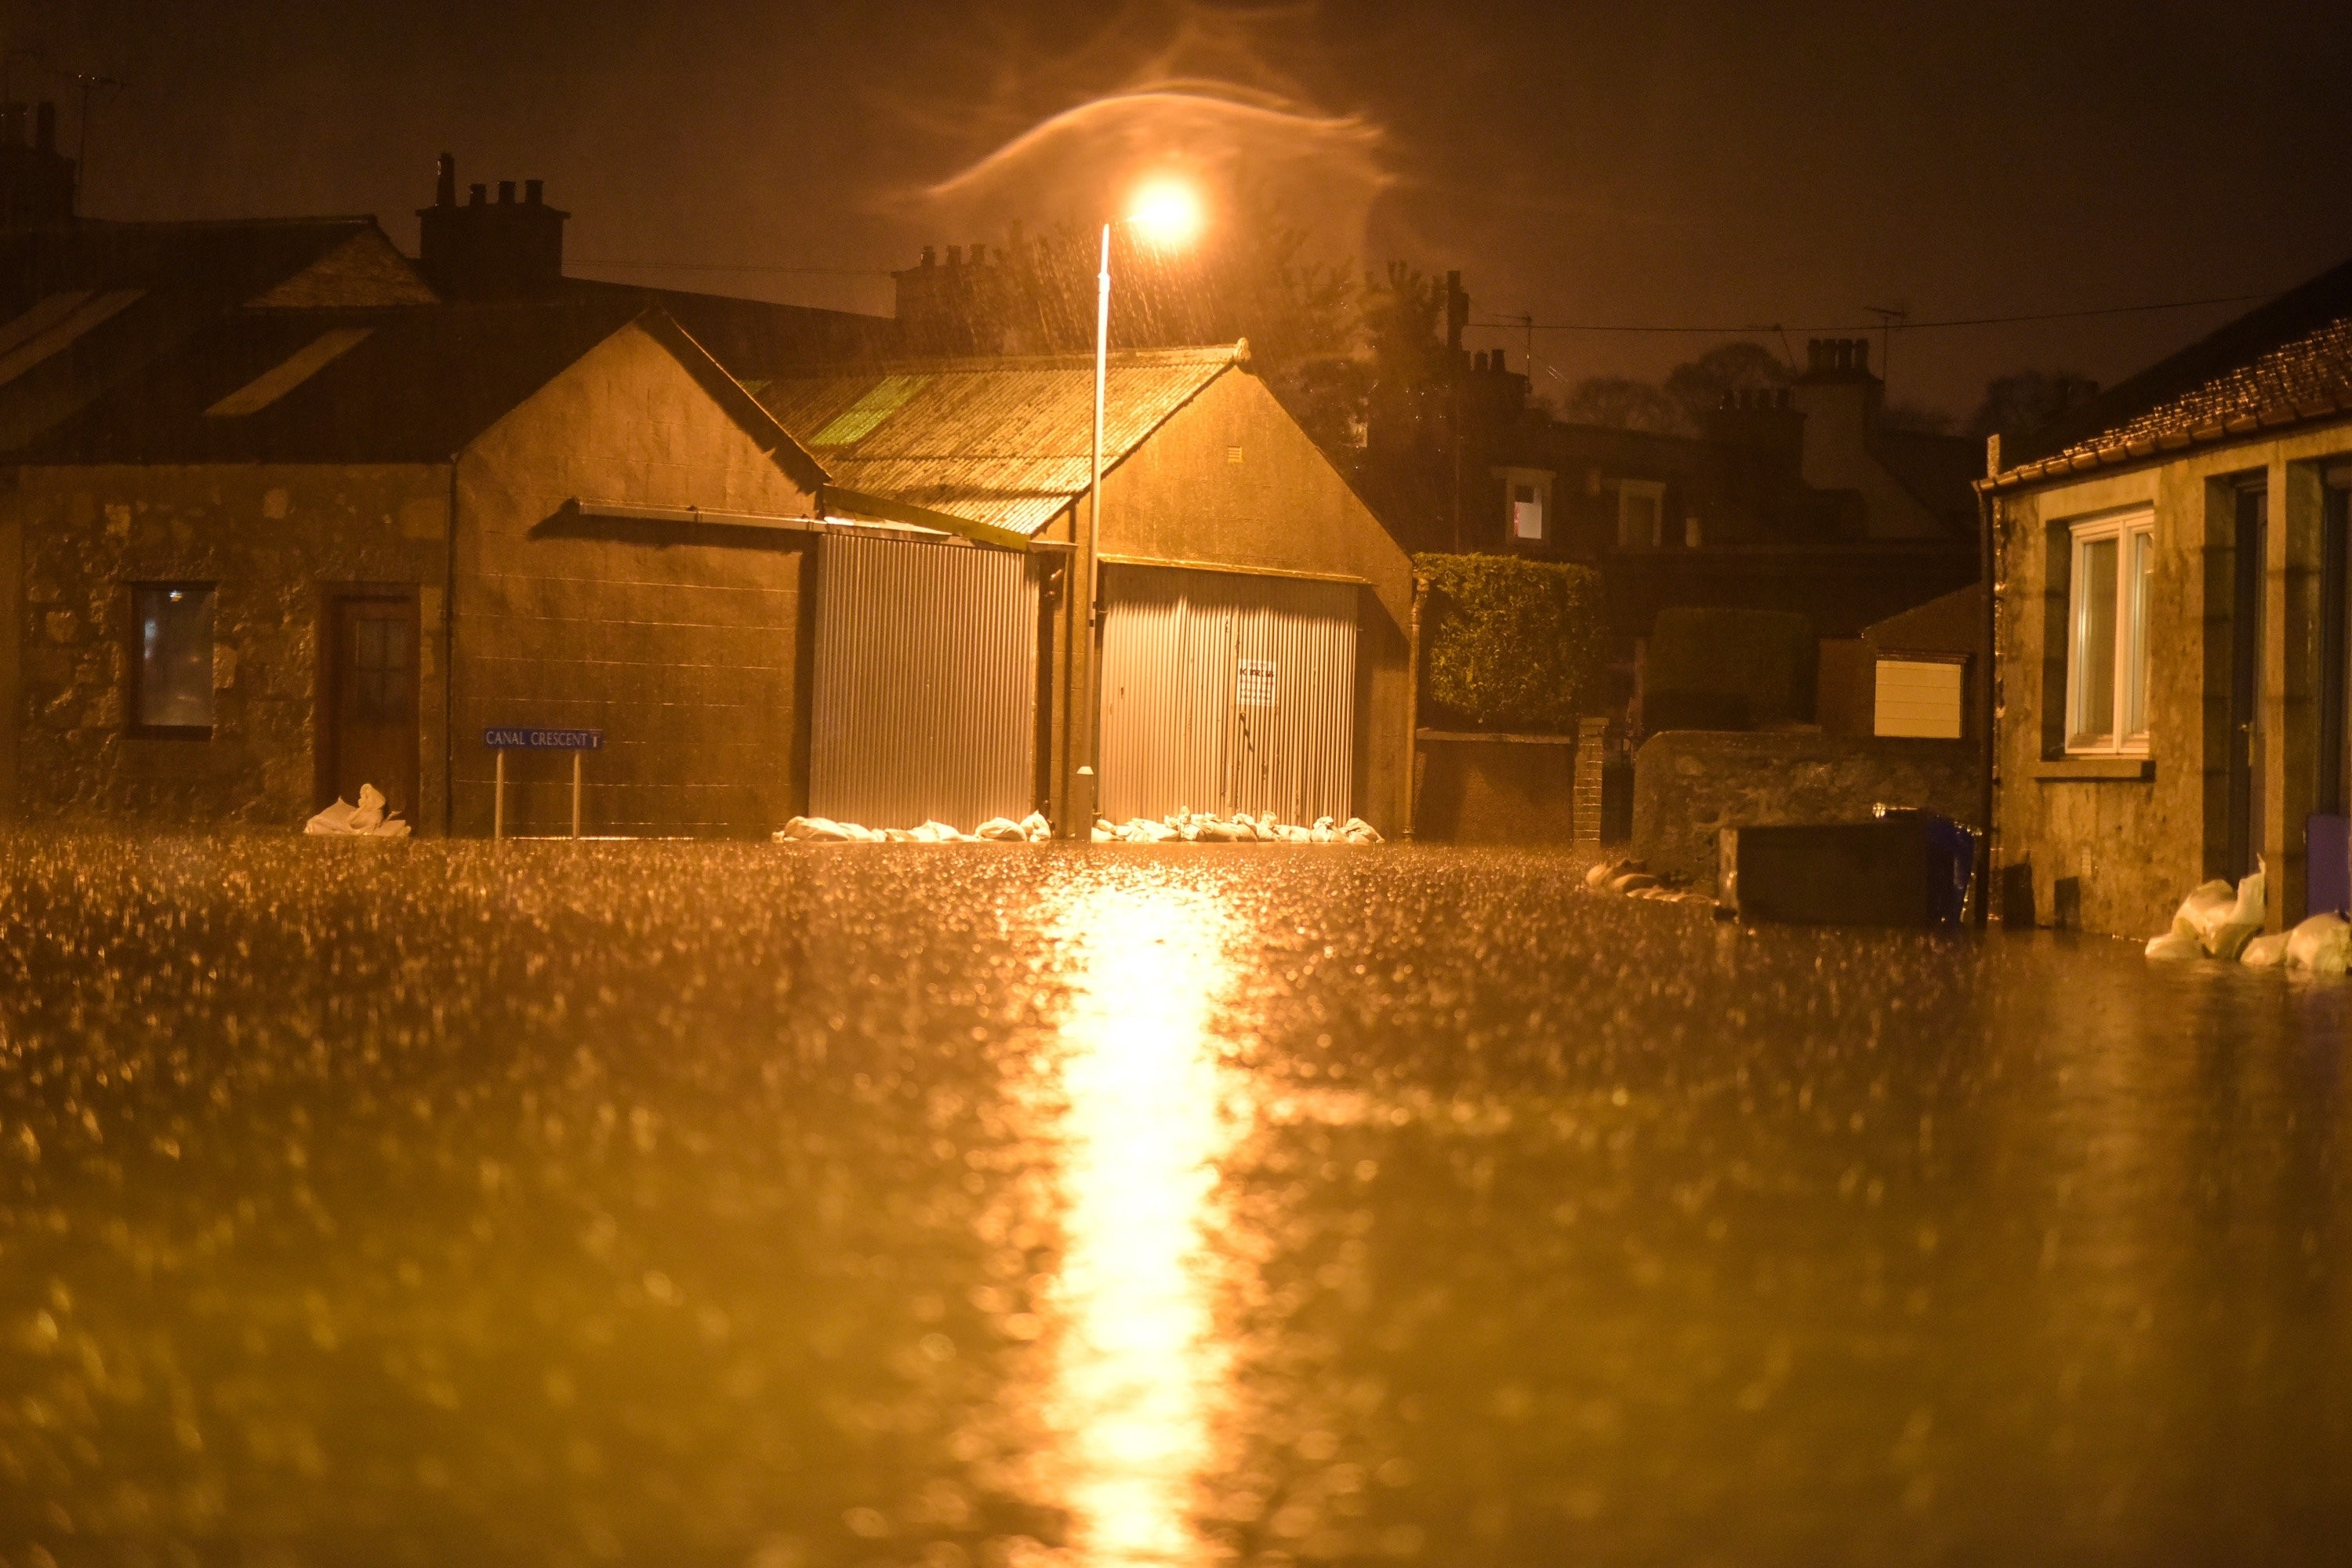 Houses in the Port Elphinstone area of Inverurie, Aberdeenshire begin to experience flooding after the River Don burst its banks on January 07 2016. Scottish Envornmental Protection Agency (SEPA) have issued two severe flood warnings for both Inverurie and Kintore, both in Aberdeenshire.